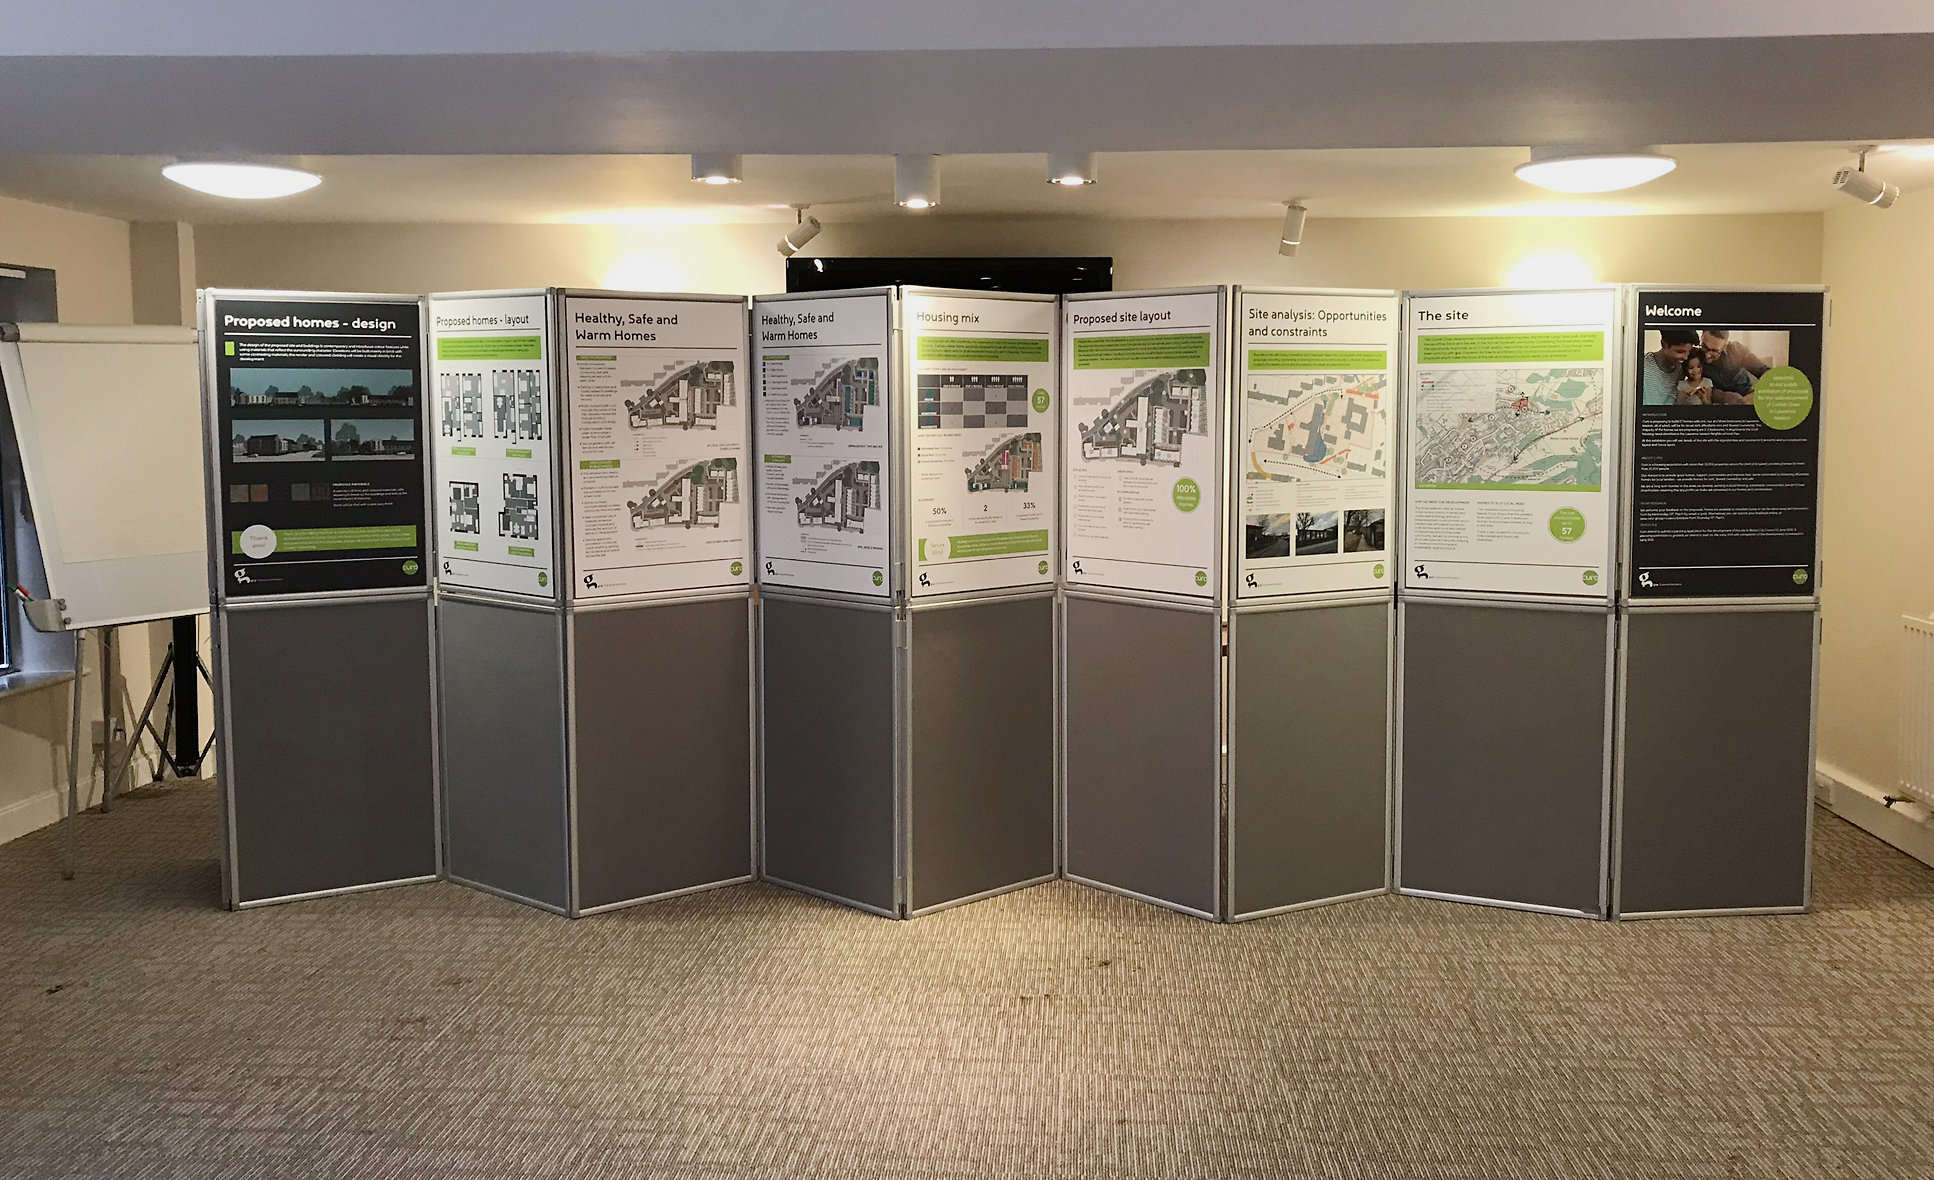 Consultation boards set up & ready to receive feedback at Corbet Close